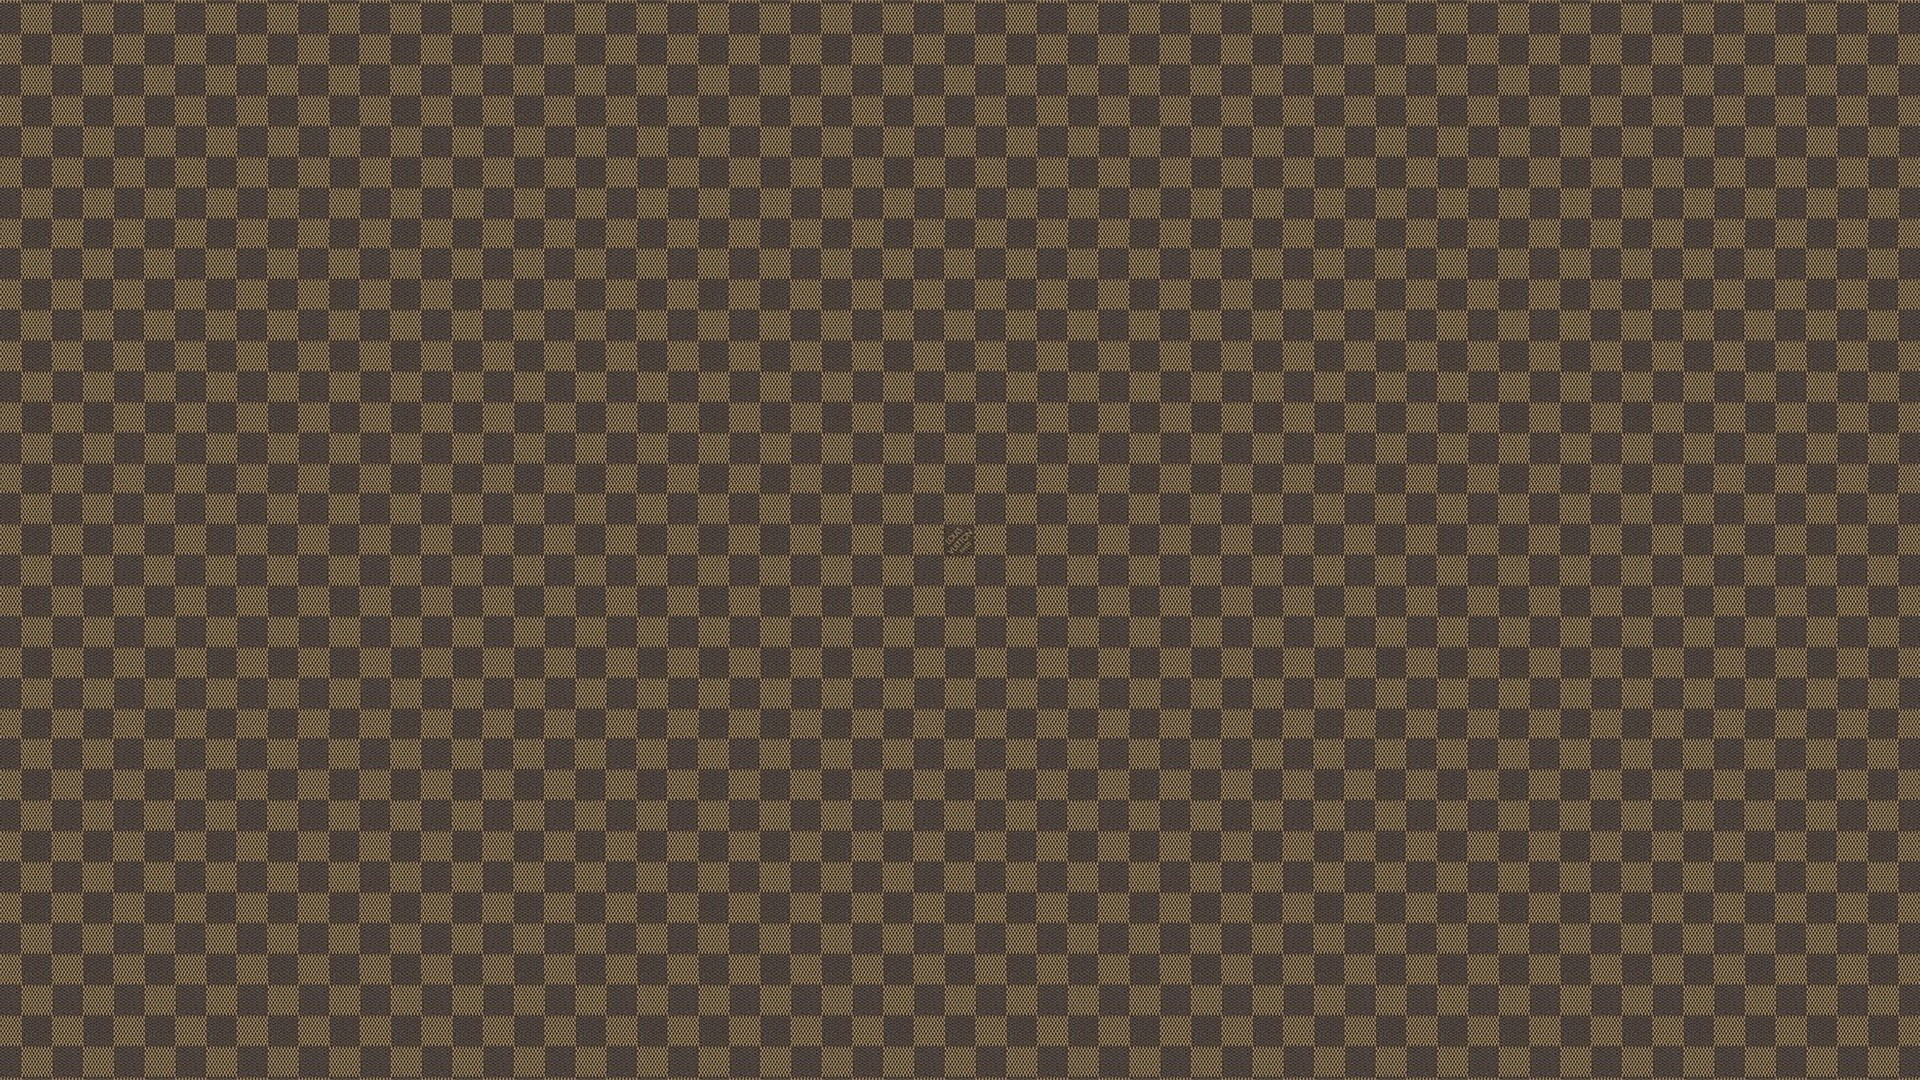 Louis vuitton 1080p wallpaper hd pixelstalk view image larger and download voltagebd Choice Image